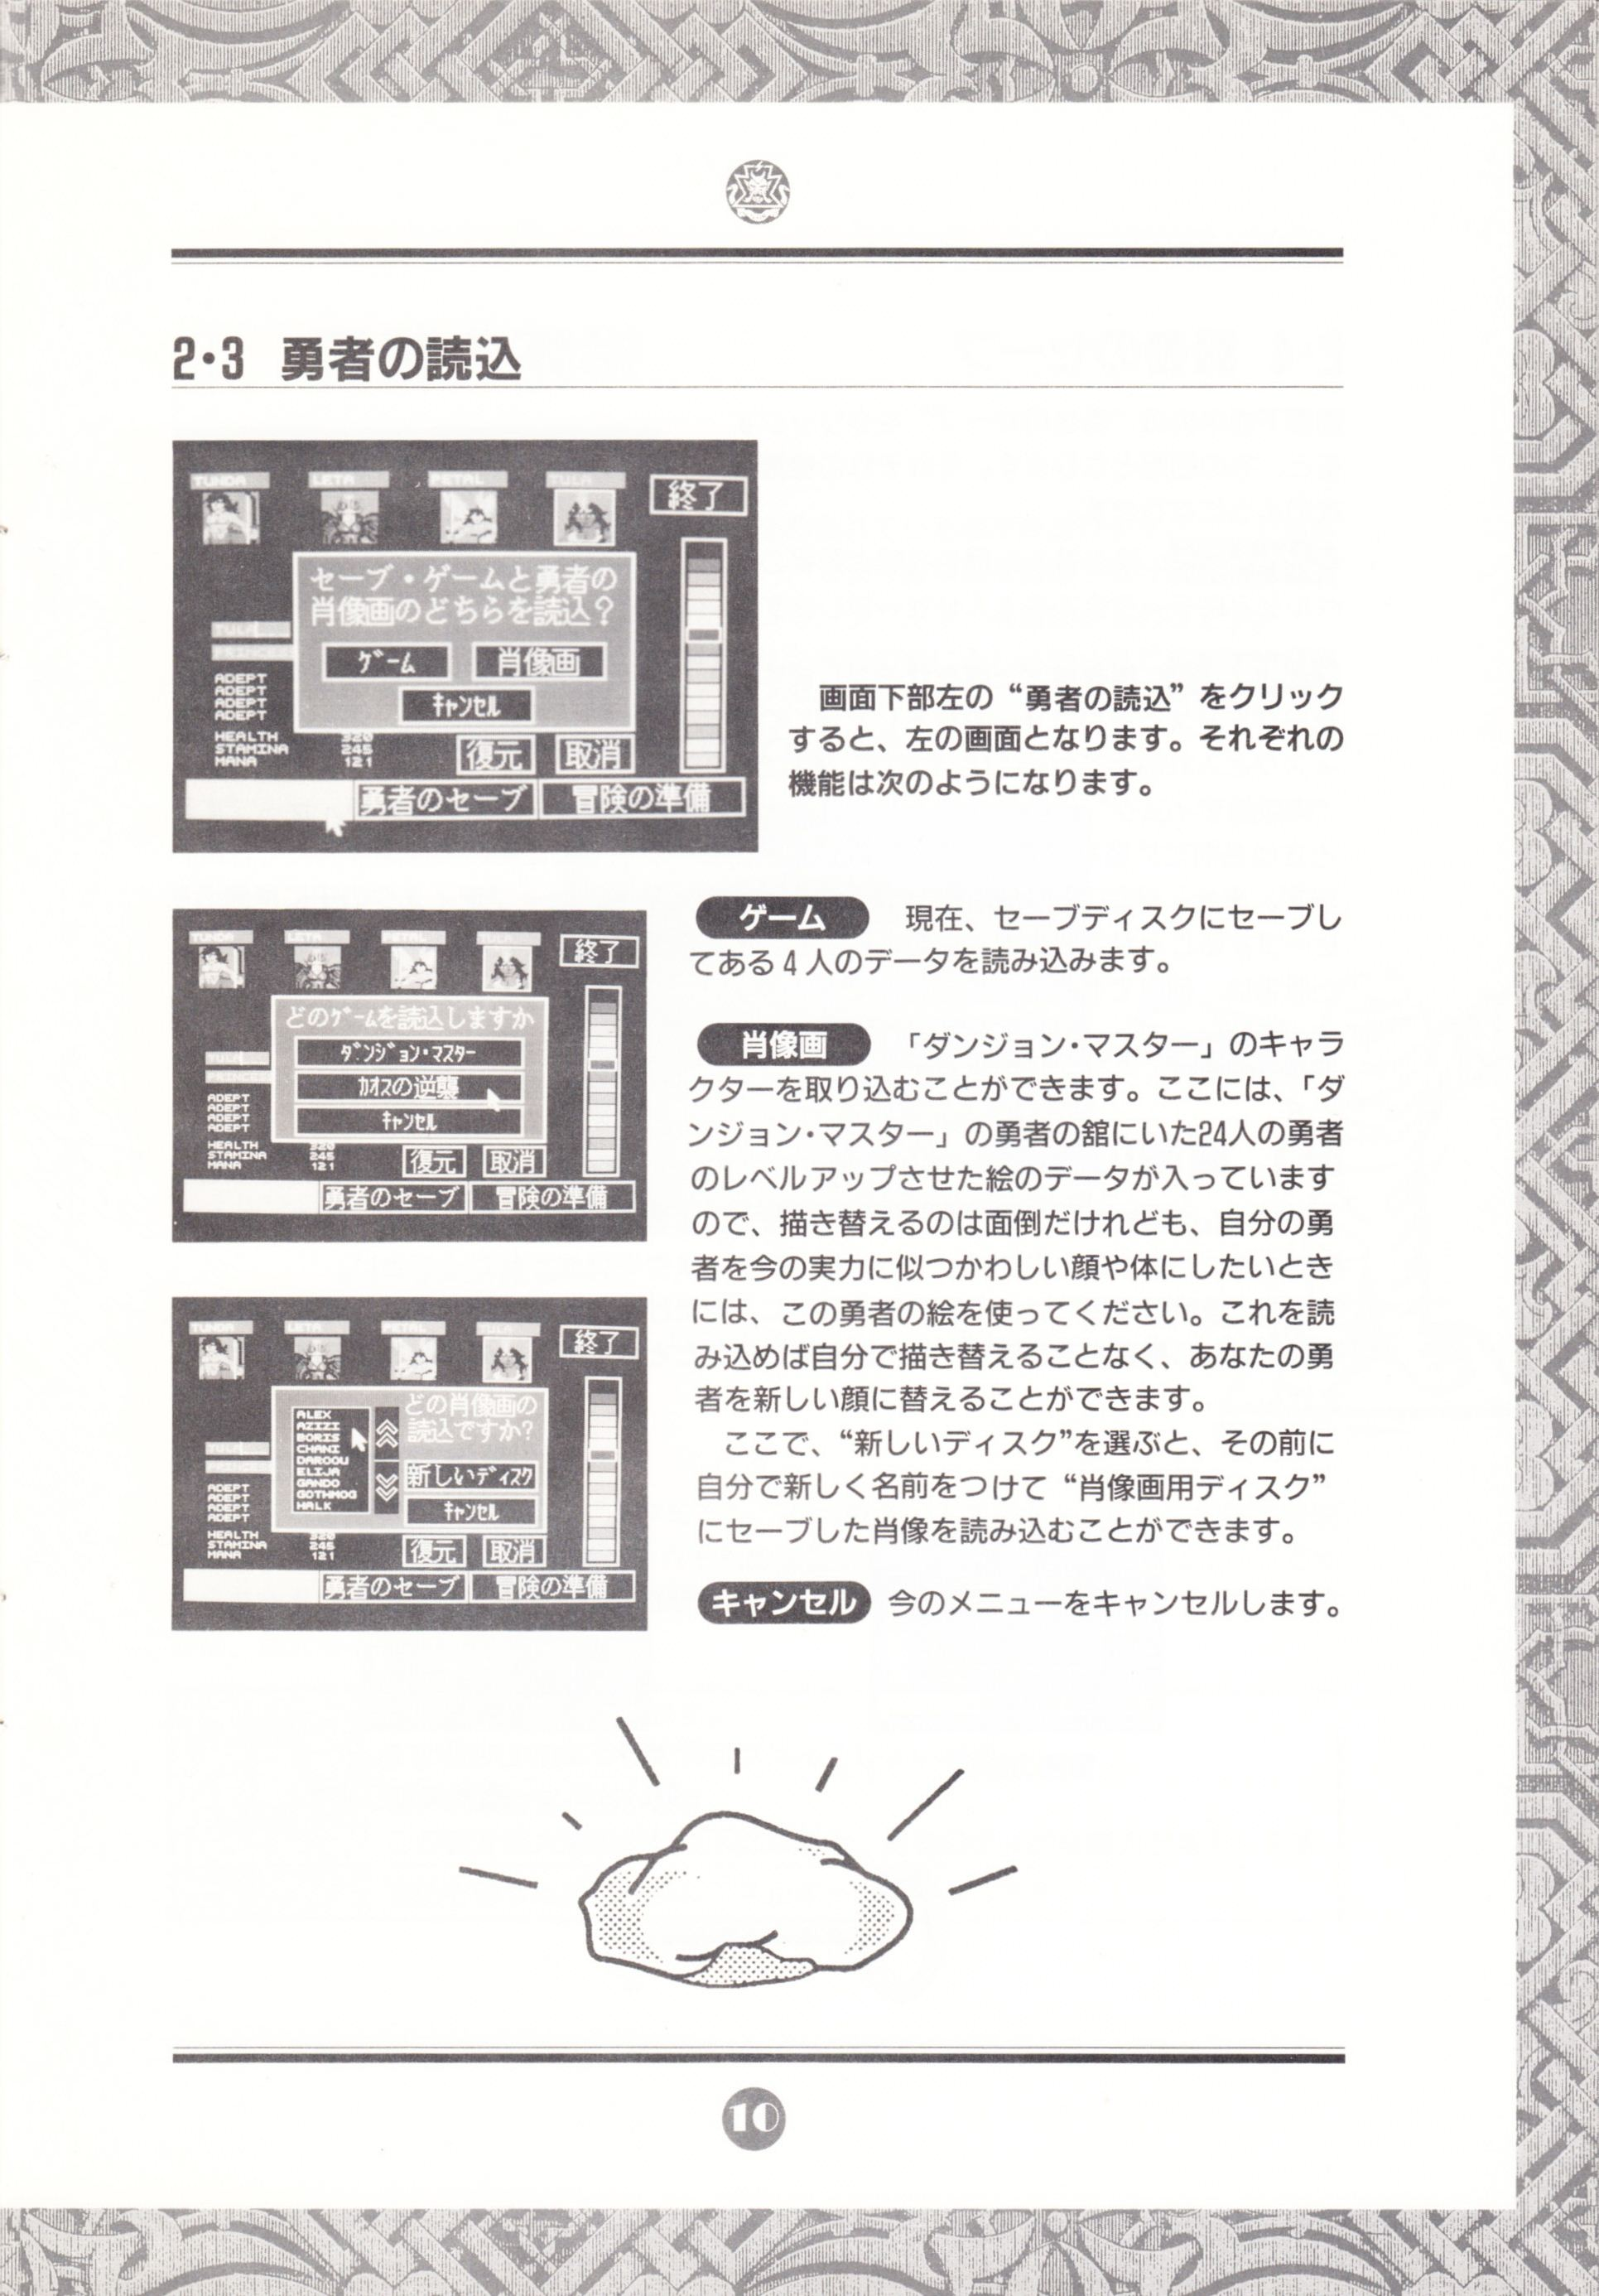 Game - Chaos Strikes Back - JP - FM Towns - An Operation Manual - Page 013 - Scan